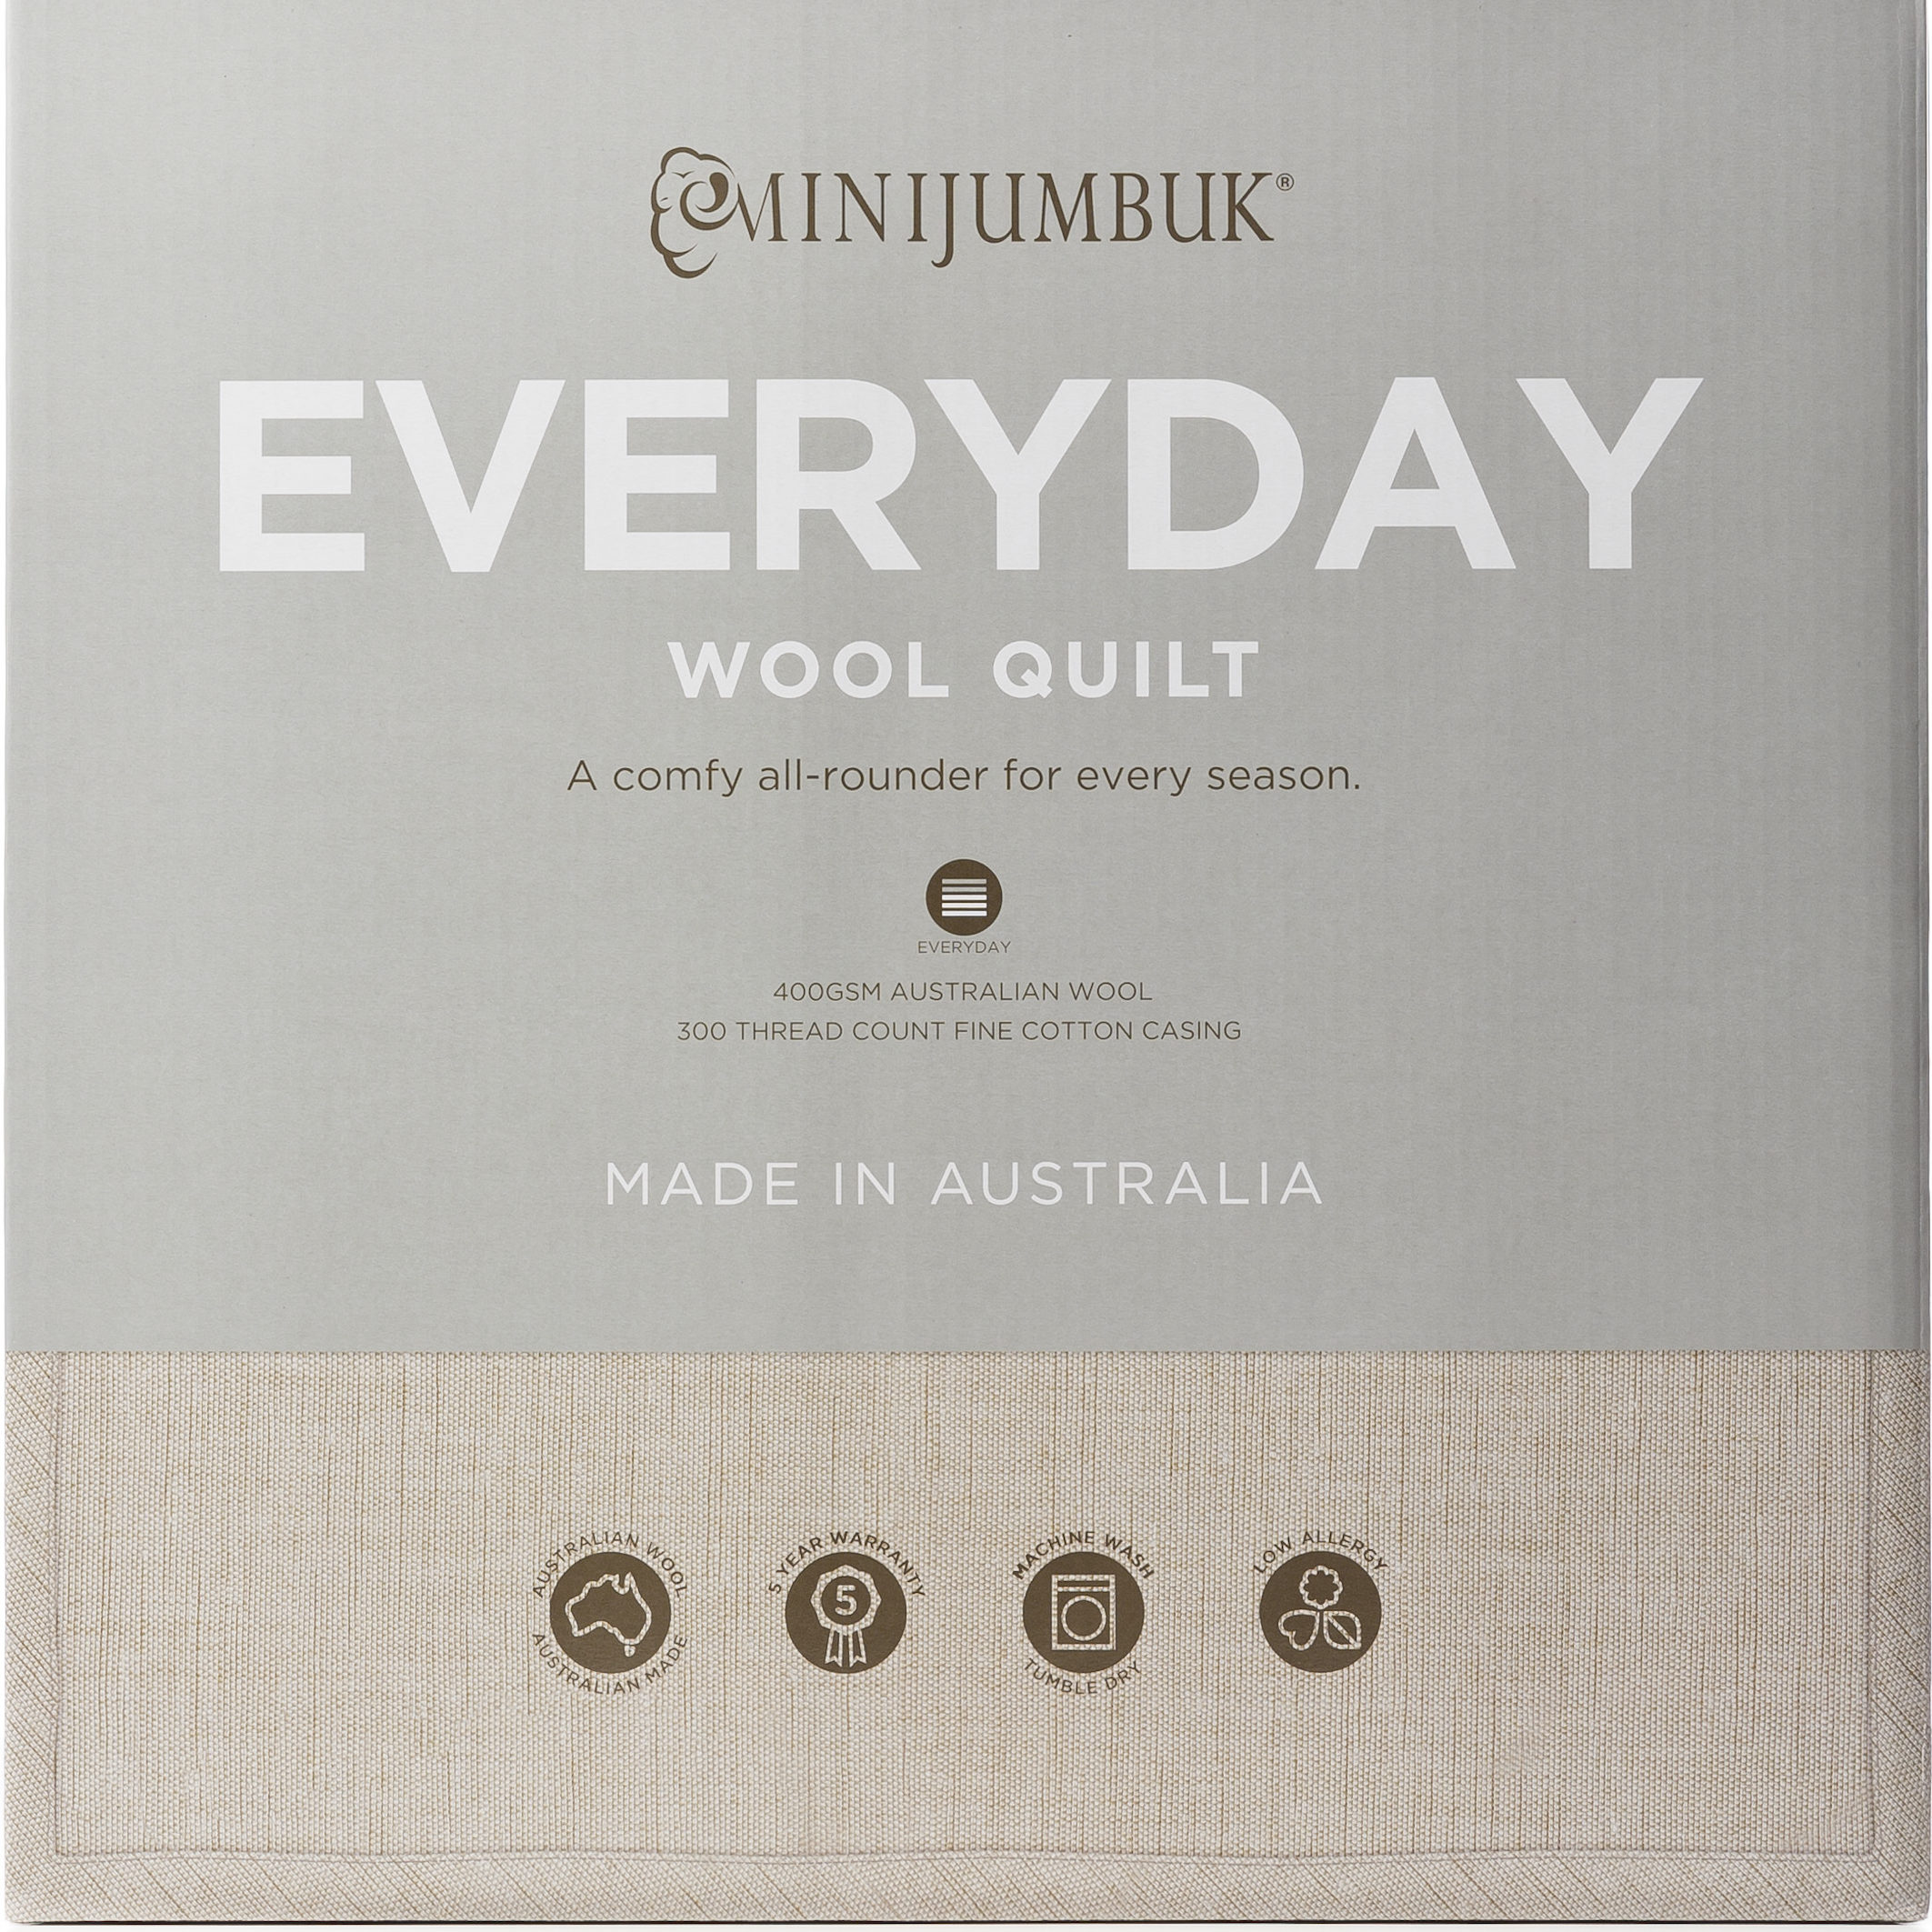 MiniJumbuk – Everyday Wool Quilt